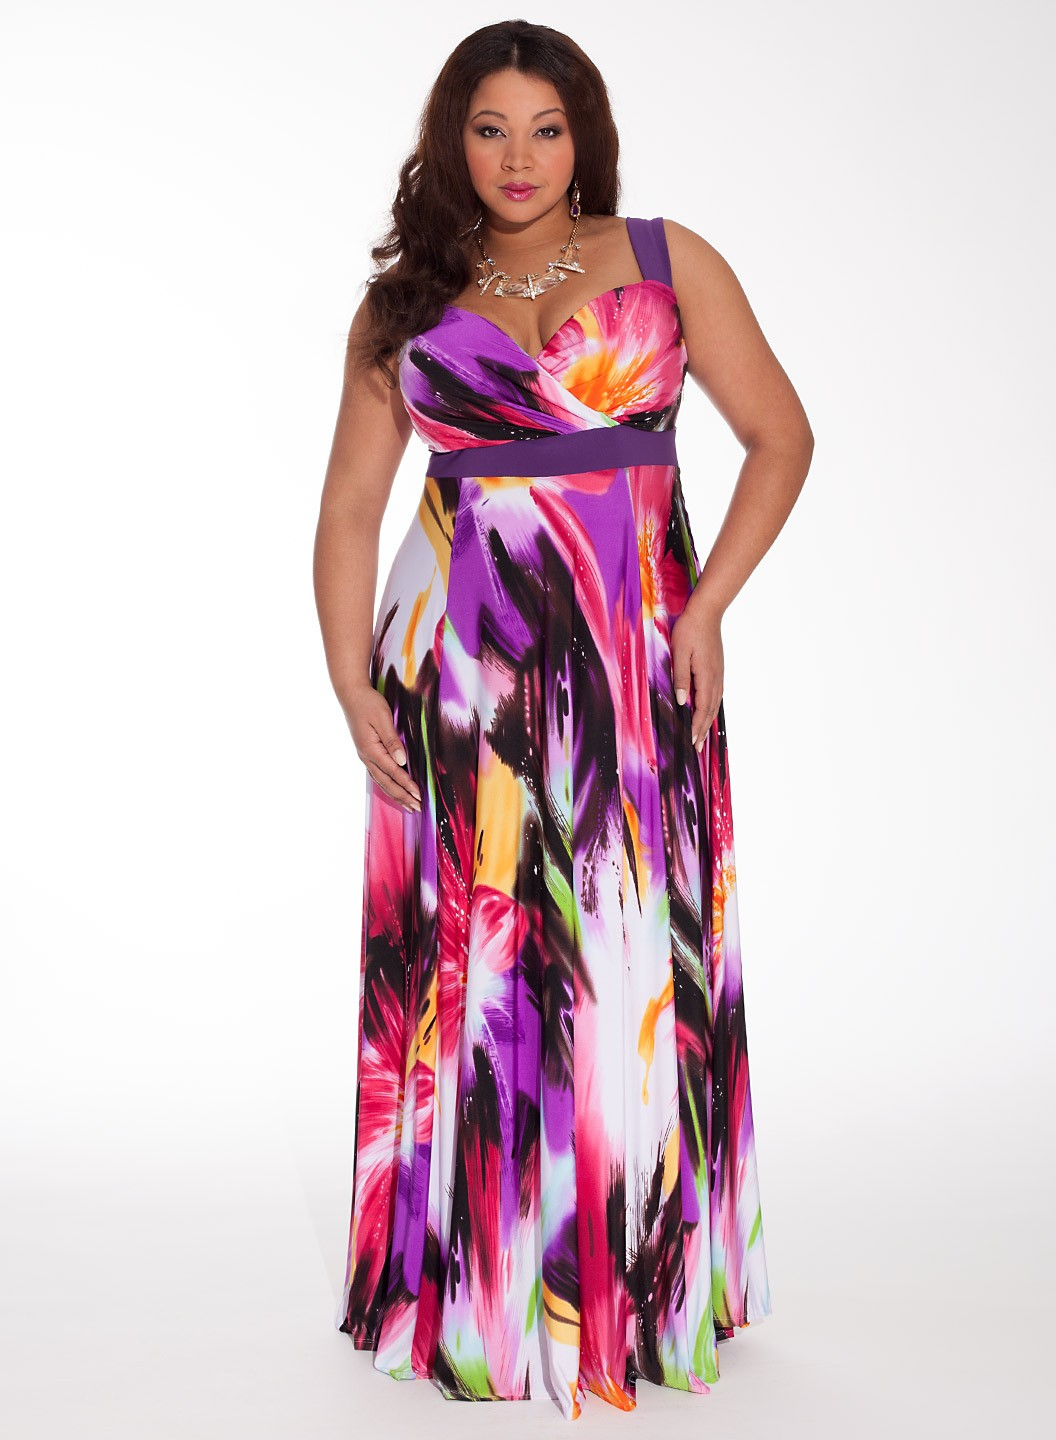 Plus Petite Size Summer Dresses - Holiday Dresses